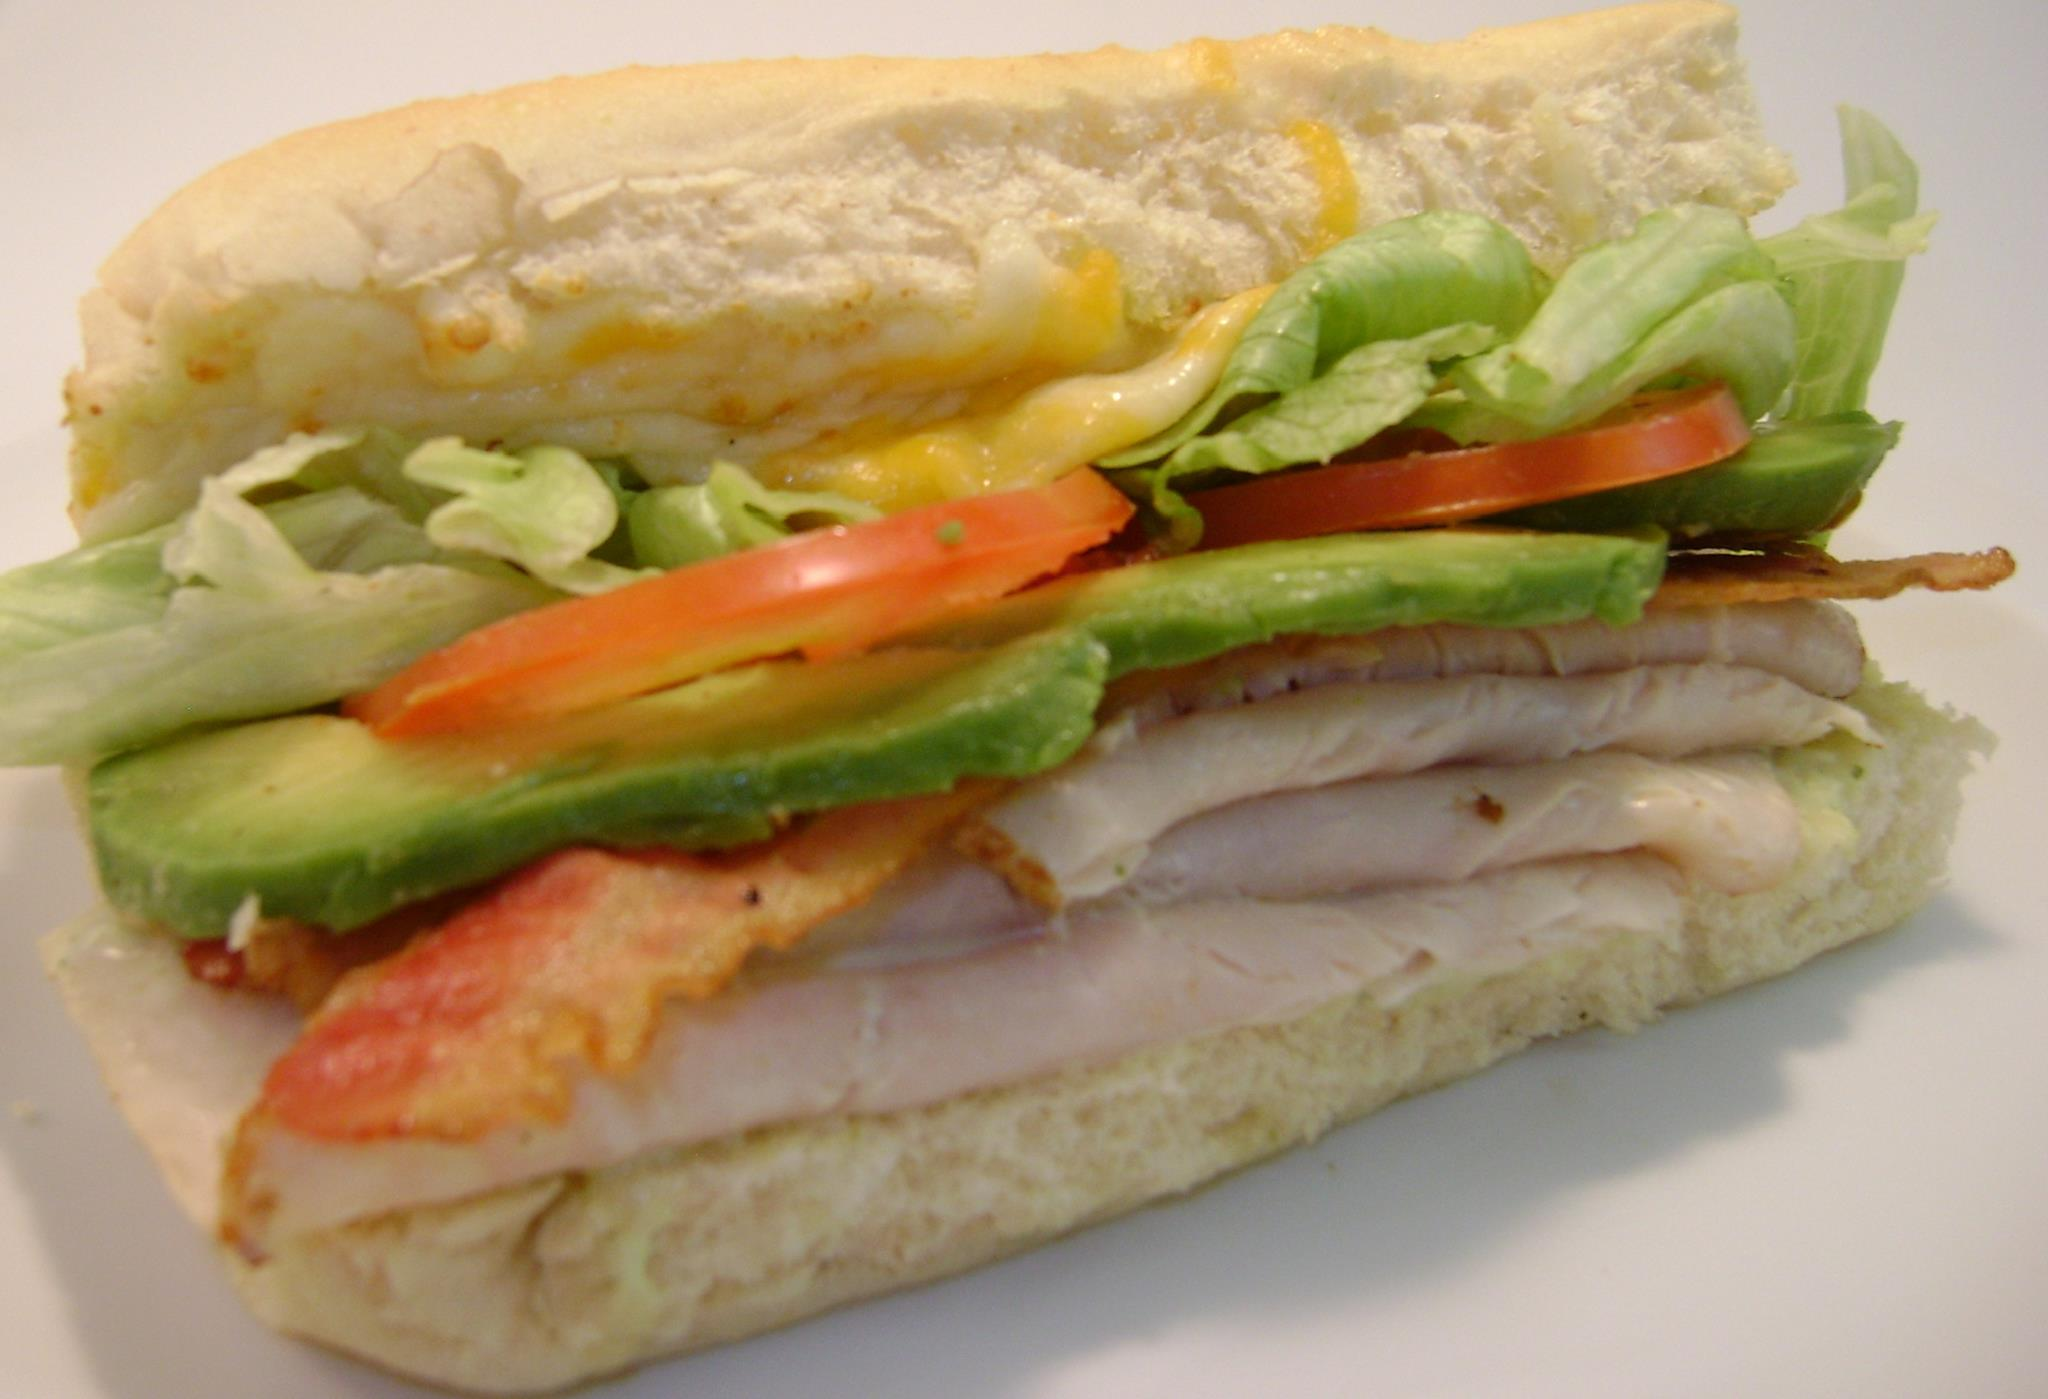 turkey sub with avocado and vegetables